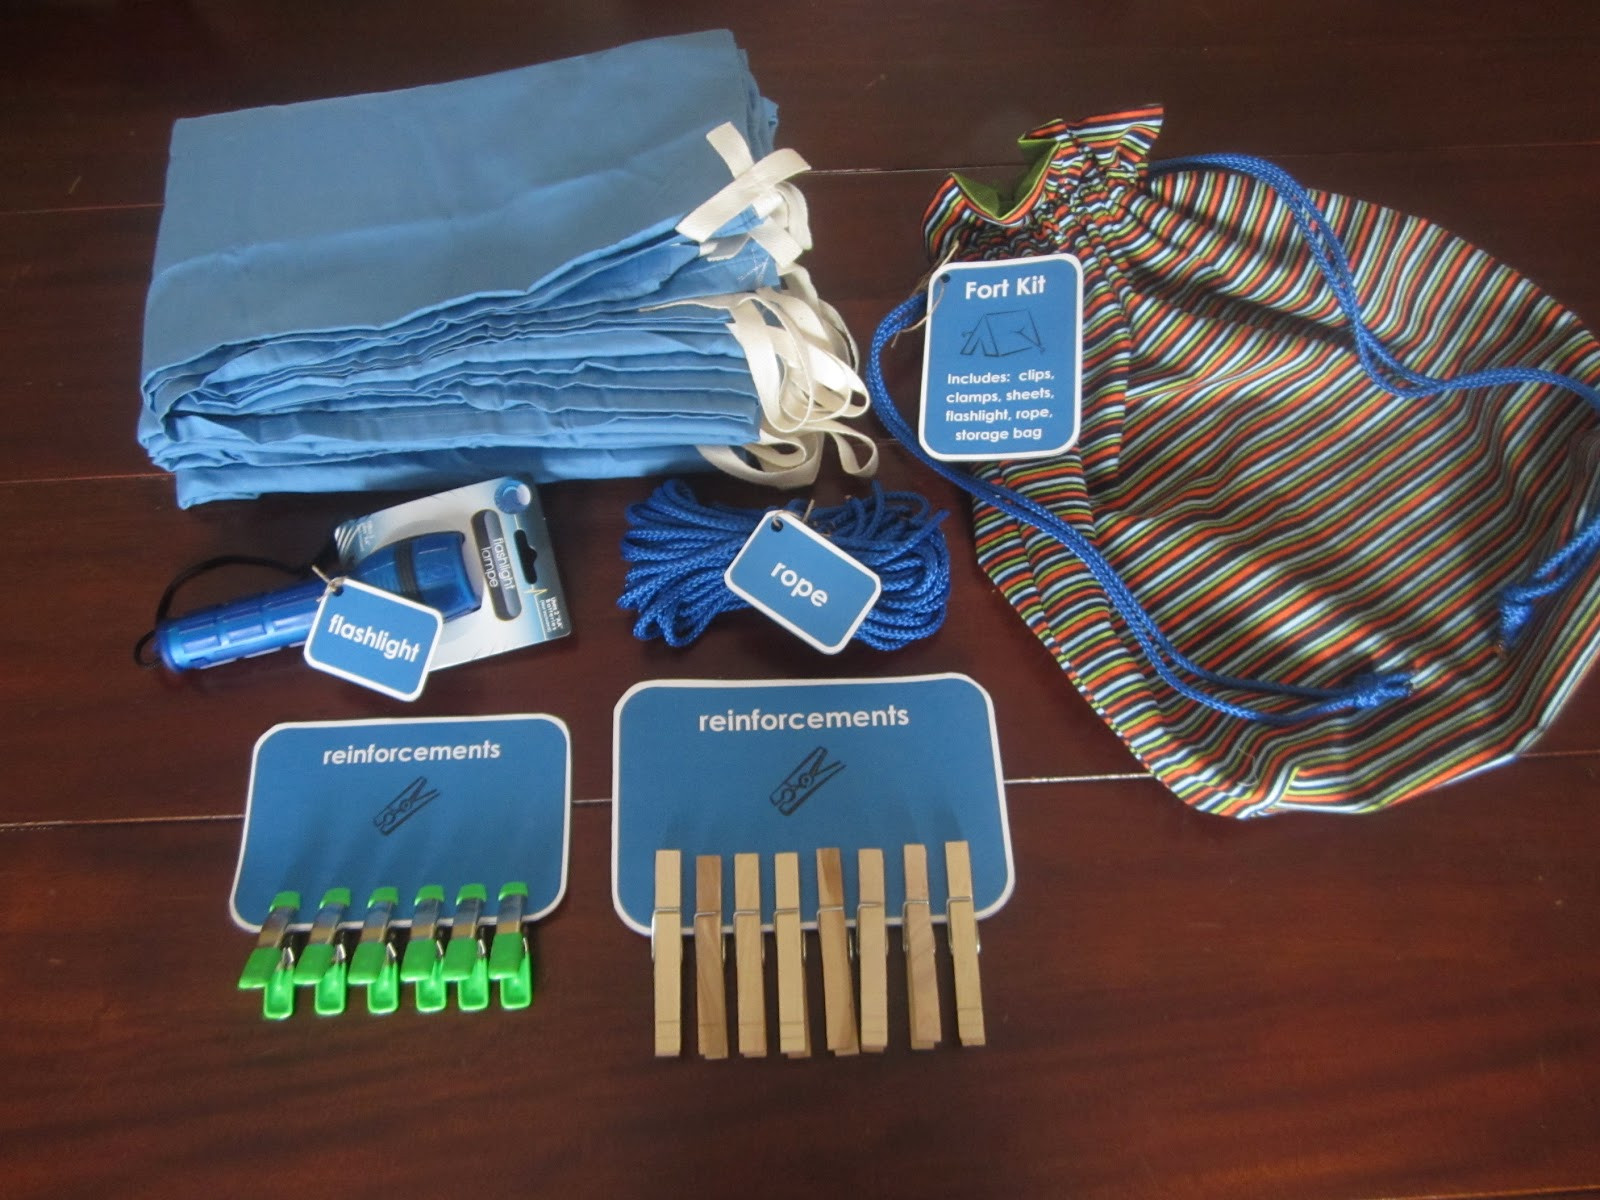 Best ideas about Fort Kit DIY . Save or Pin Make Your Own Fort Kit Now.